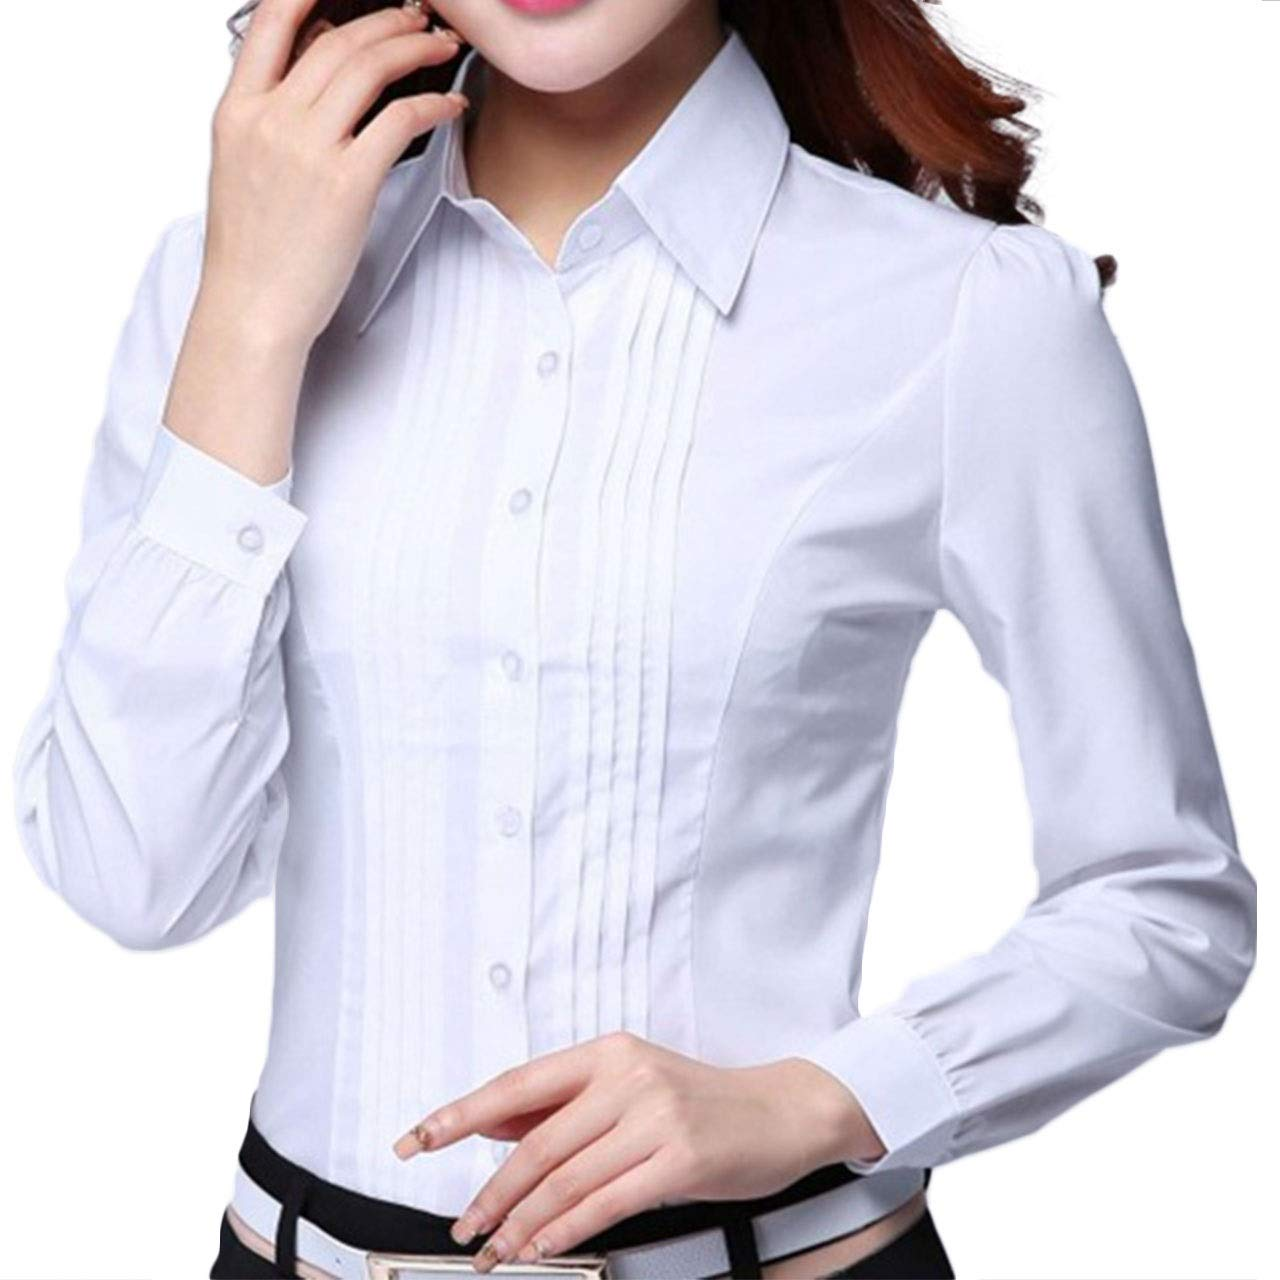 Ptkey Womens Dress Shirts Long Sleeve With Pleat Detail In White